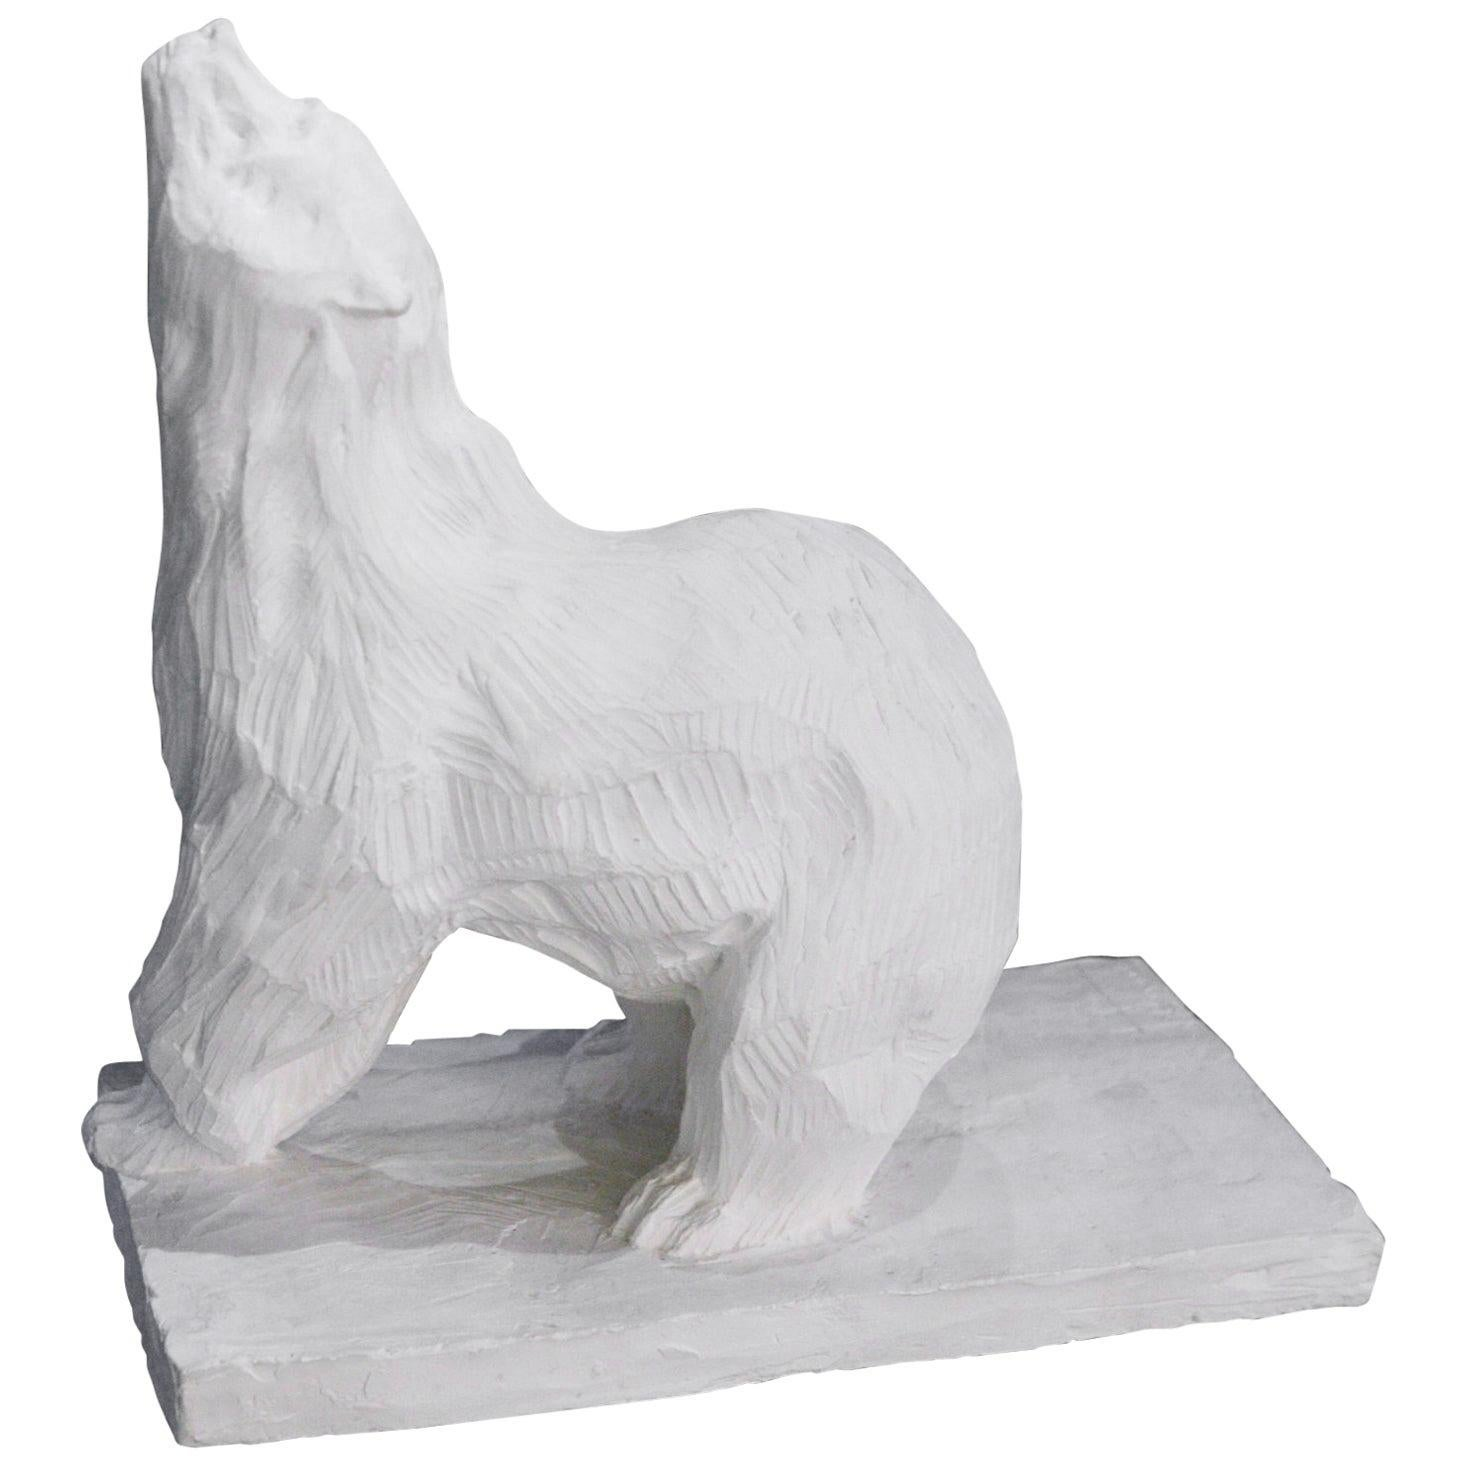 Sculpture Bear in Plaster Limited Edition 60/100 by J.B Vandame, 2015